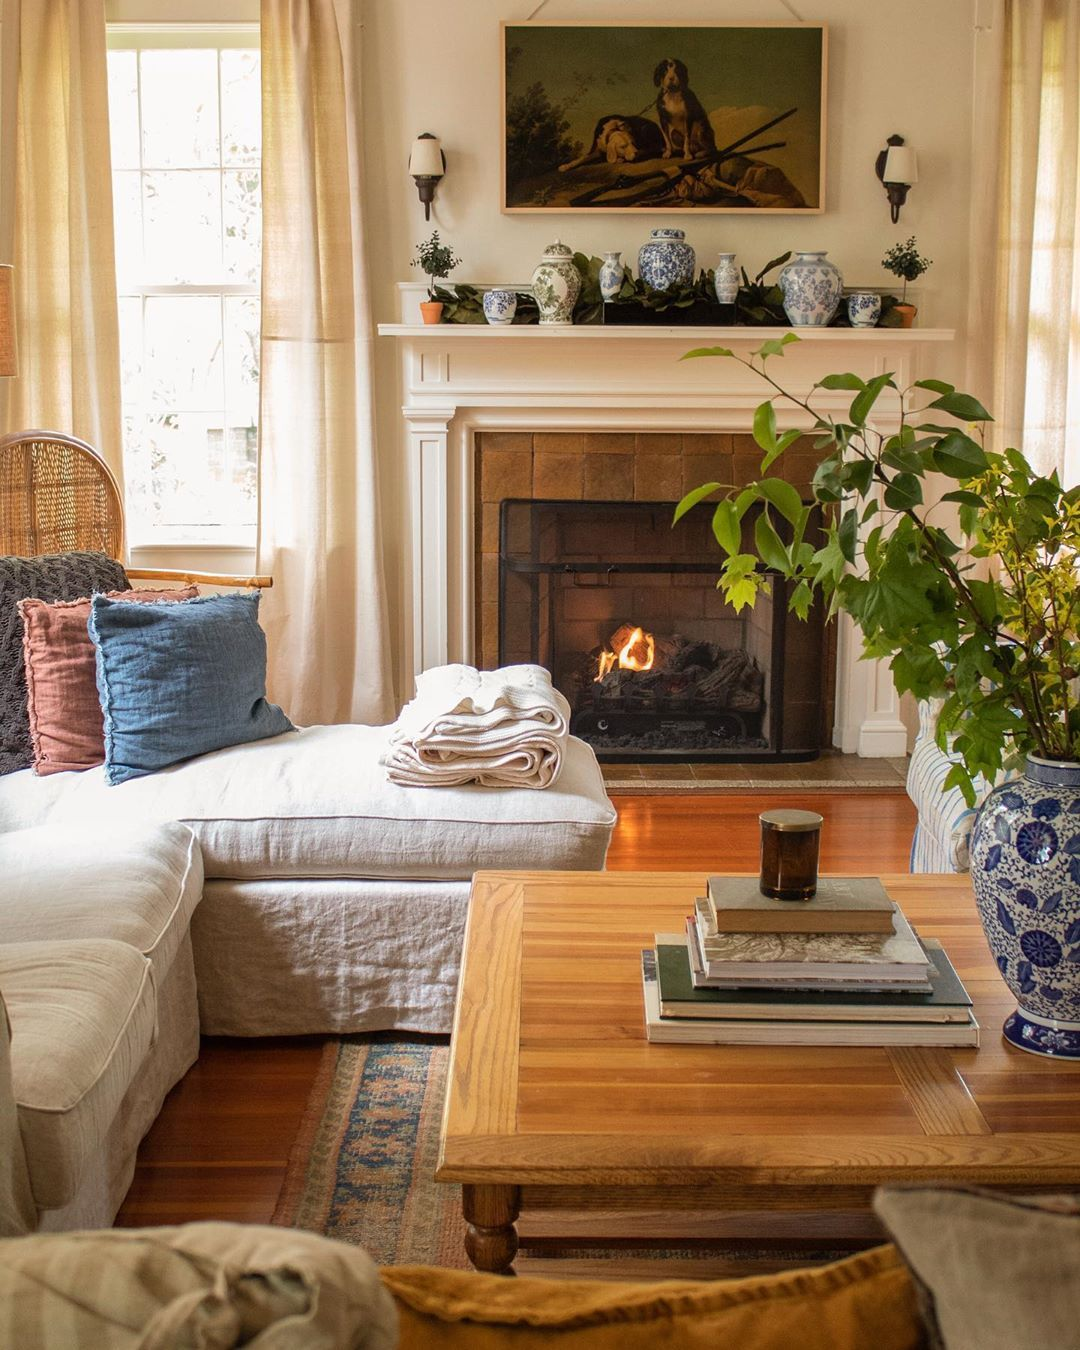 Erin Napier from HGTV's Home Town shows off the vintage style perfectly, from her love of historic restoration to her penchant for classic food and homespun fun.